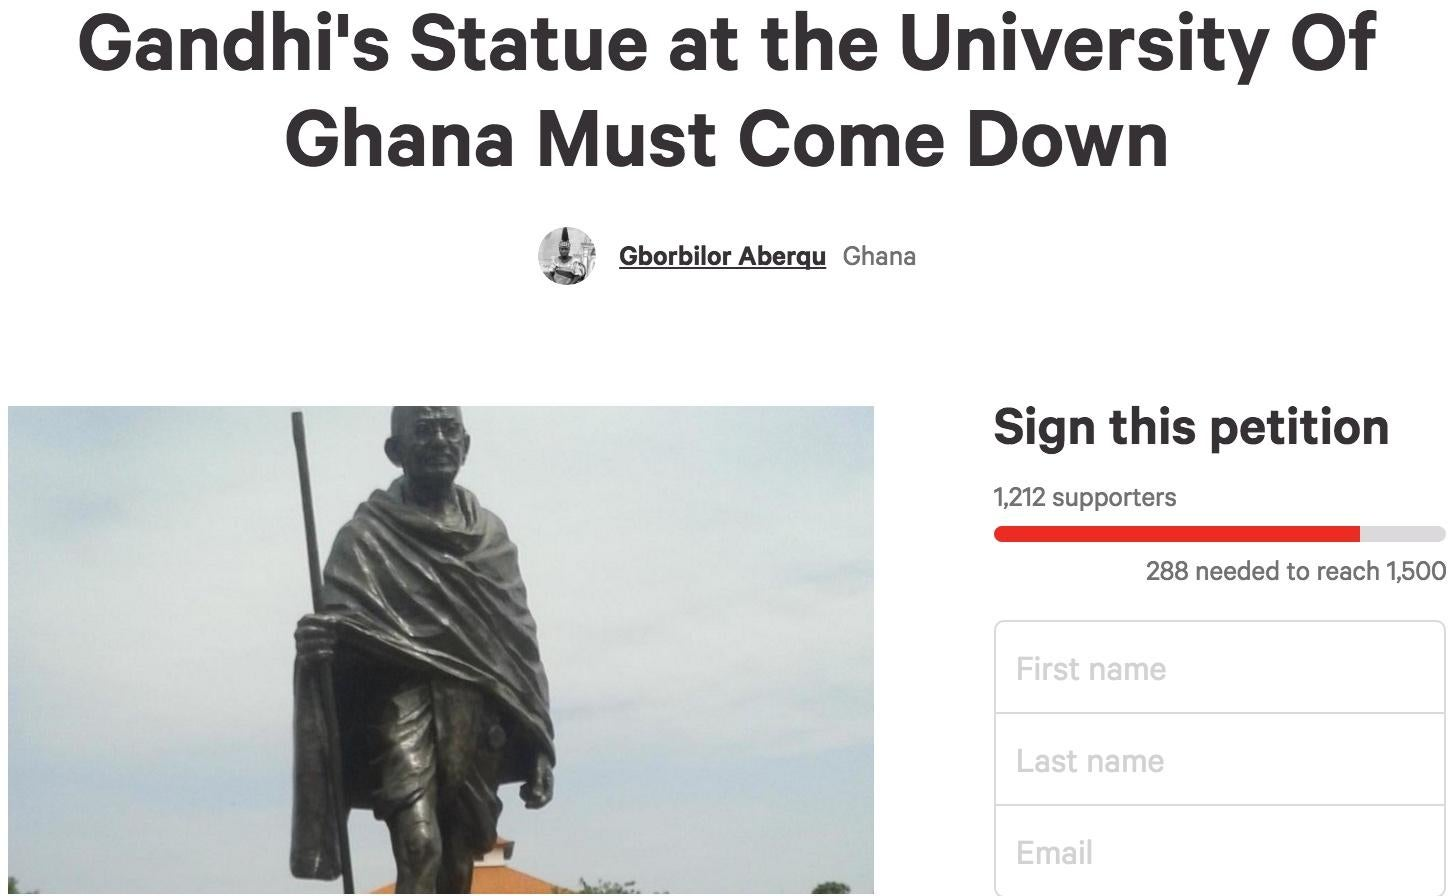 Professors At University Of Ghana Demand Removal Of Racist Gandhi